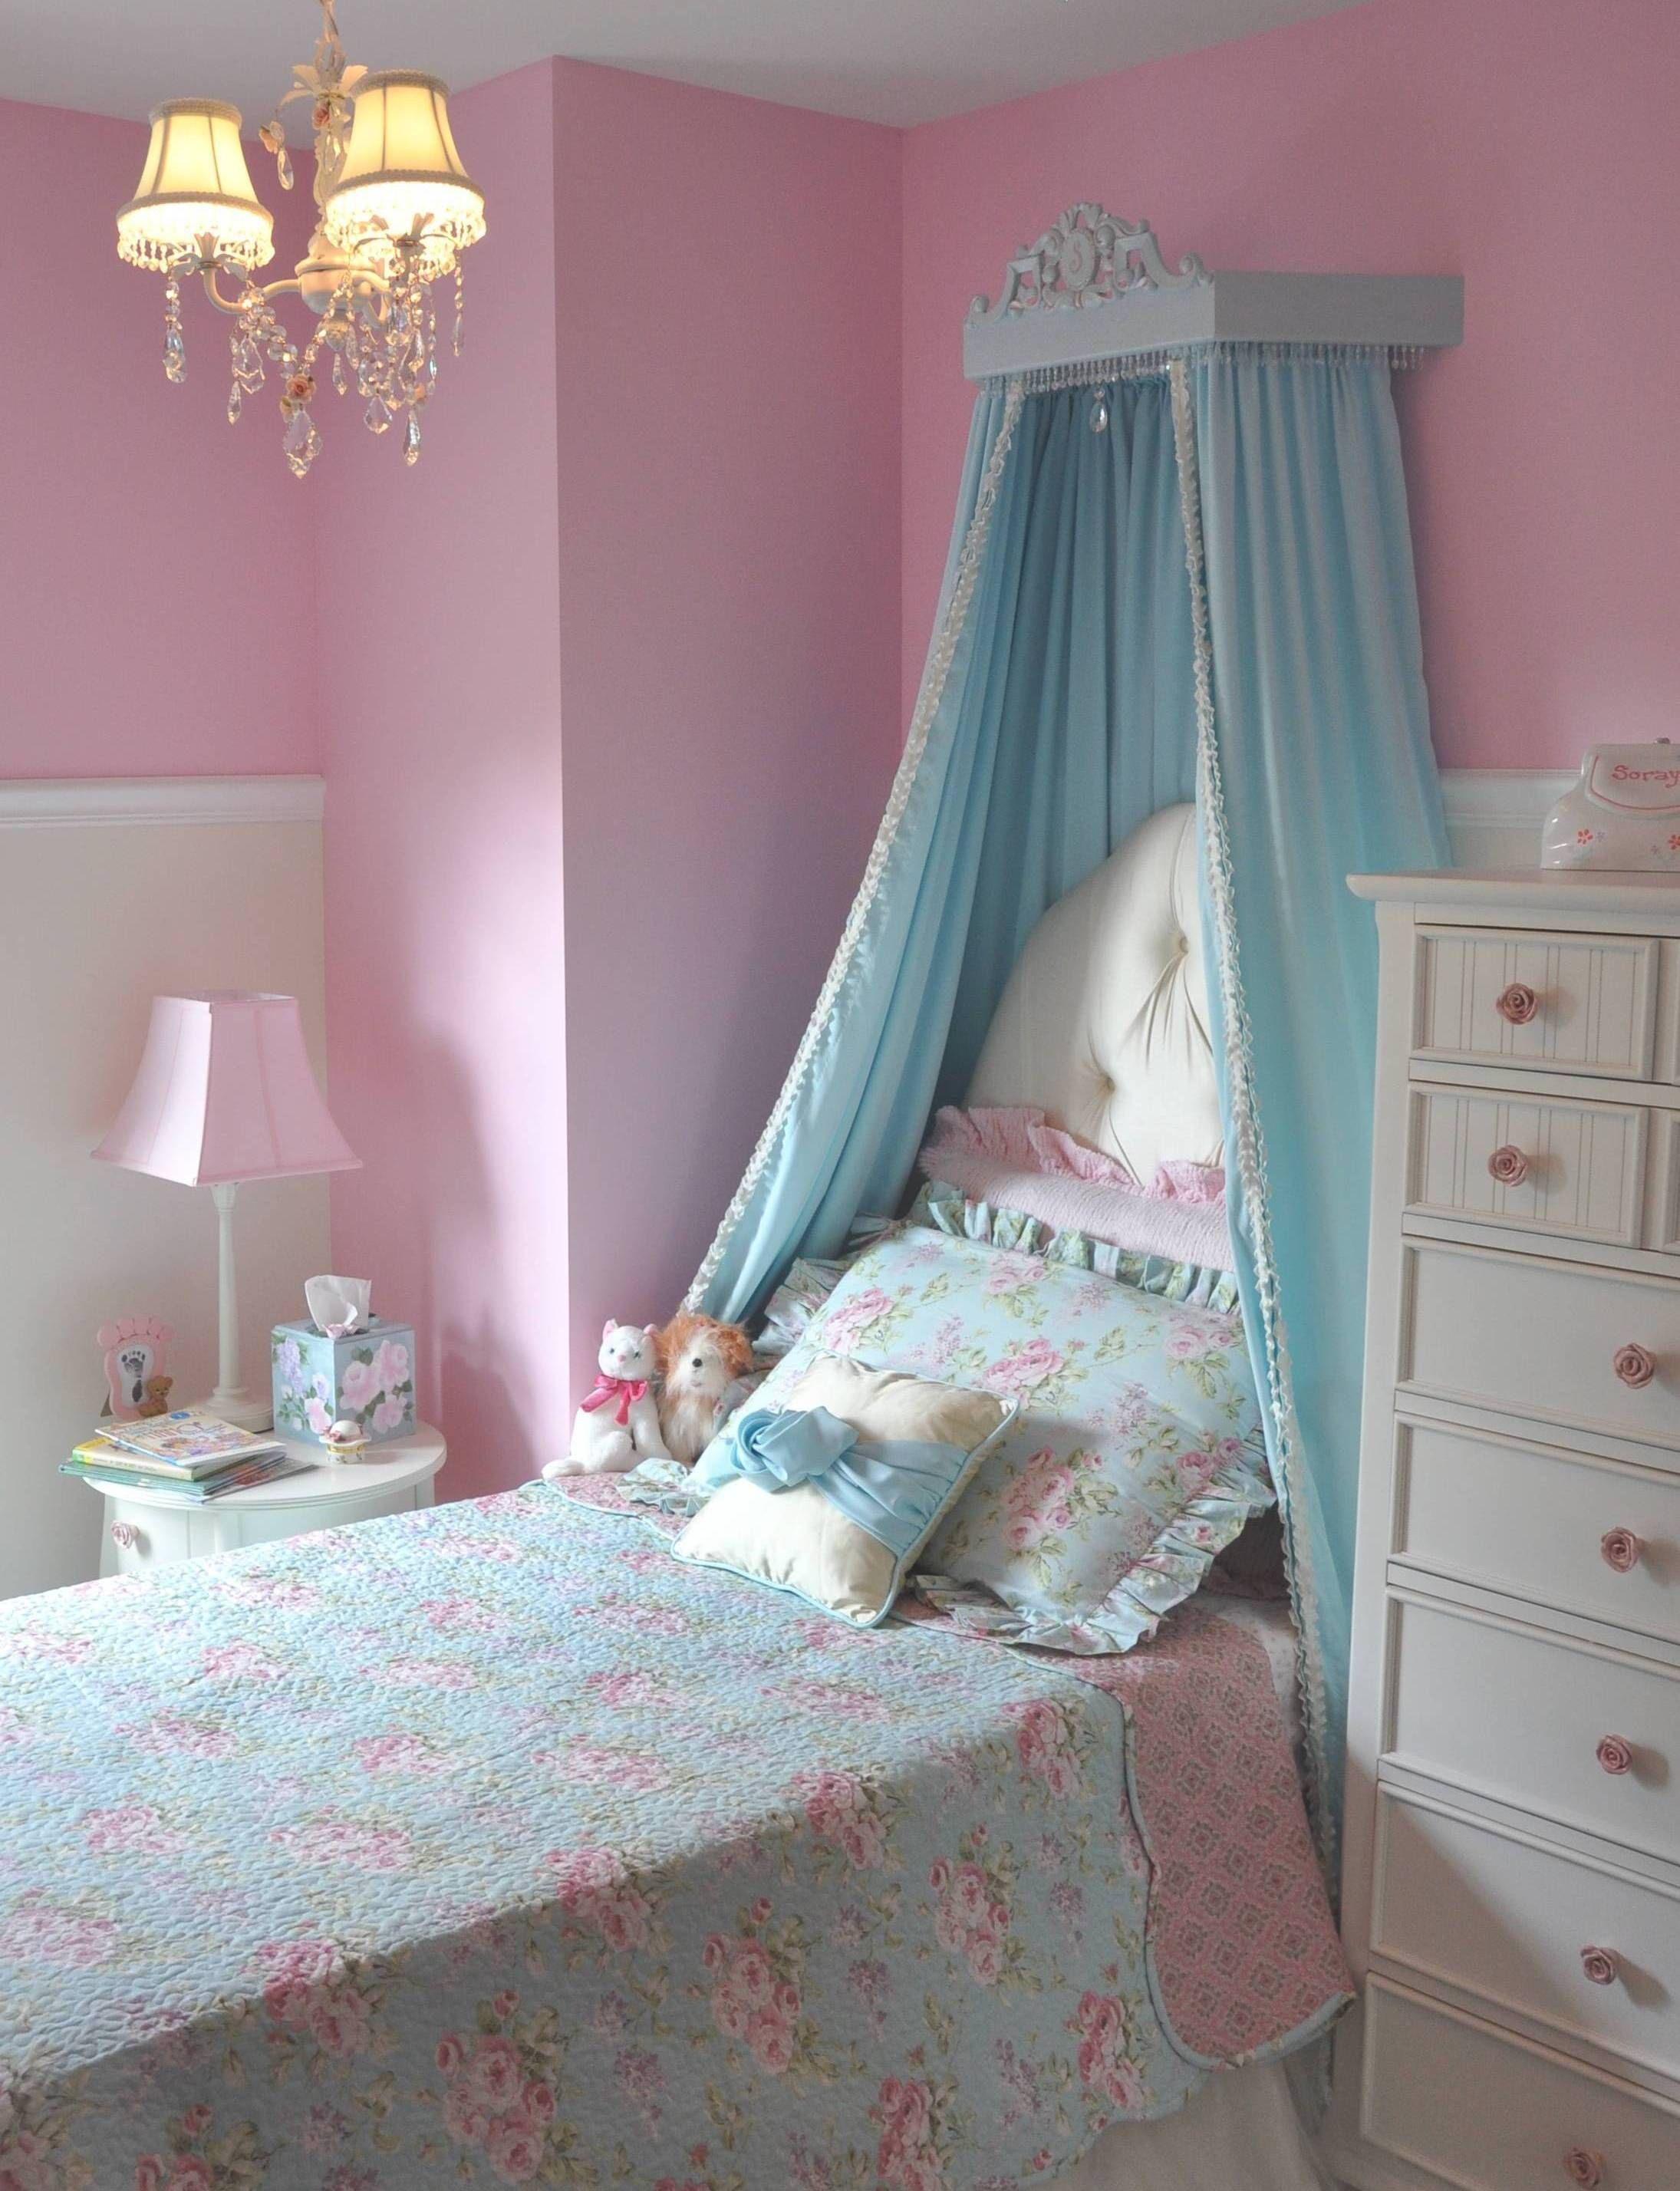 She's a Big Girl Now Princess Room Twin beds, Canopy and